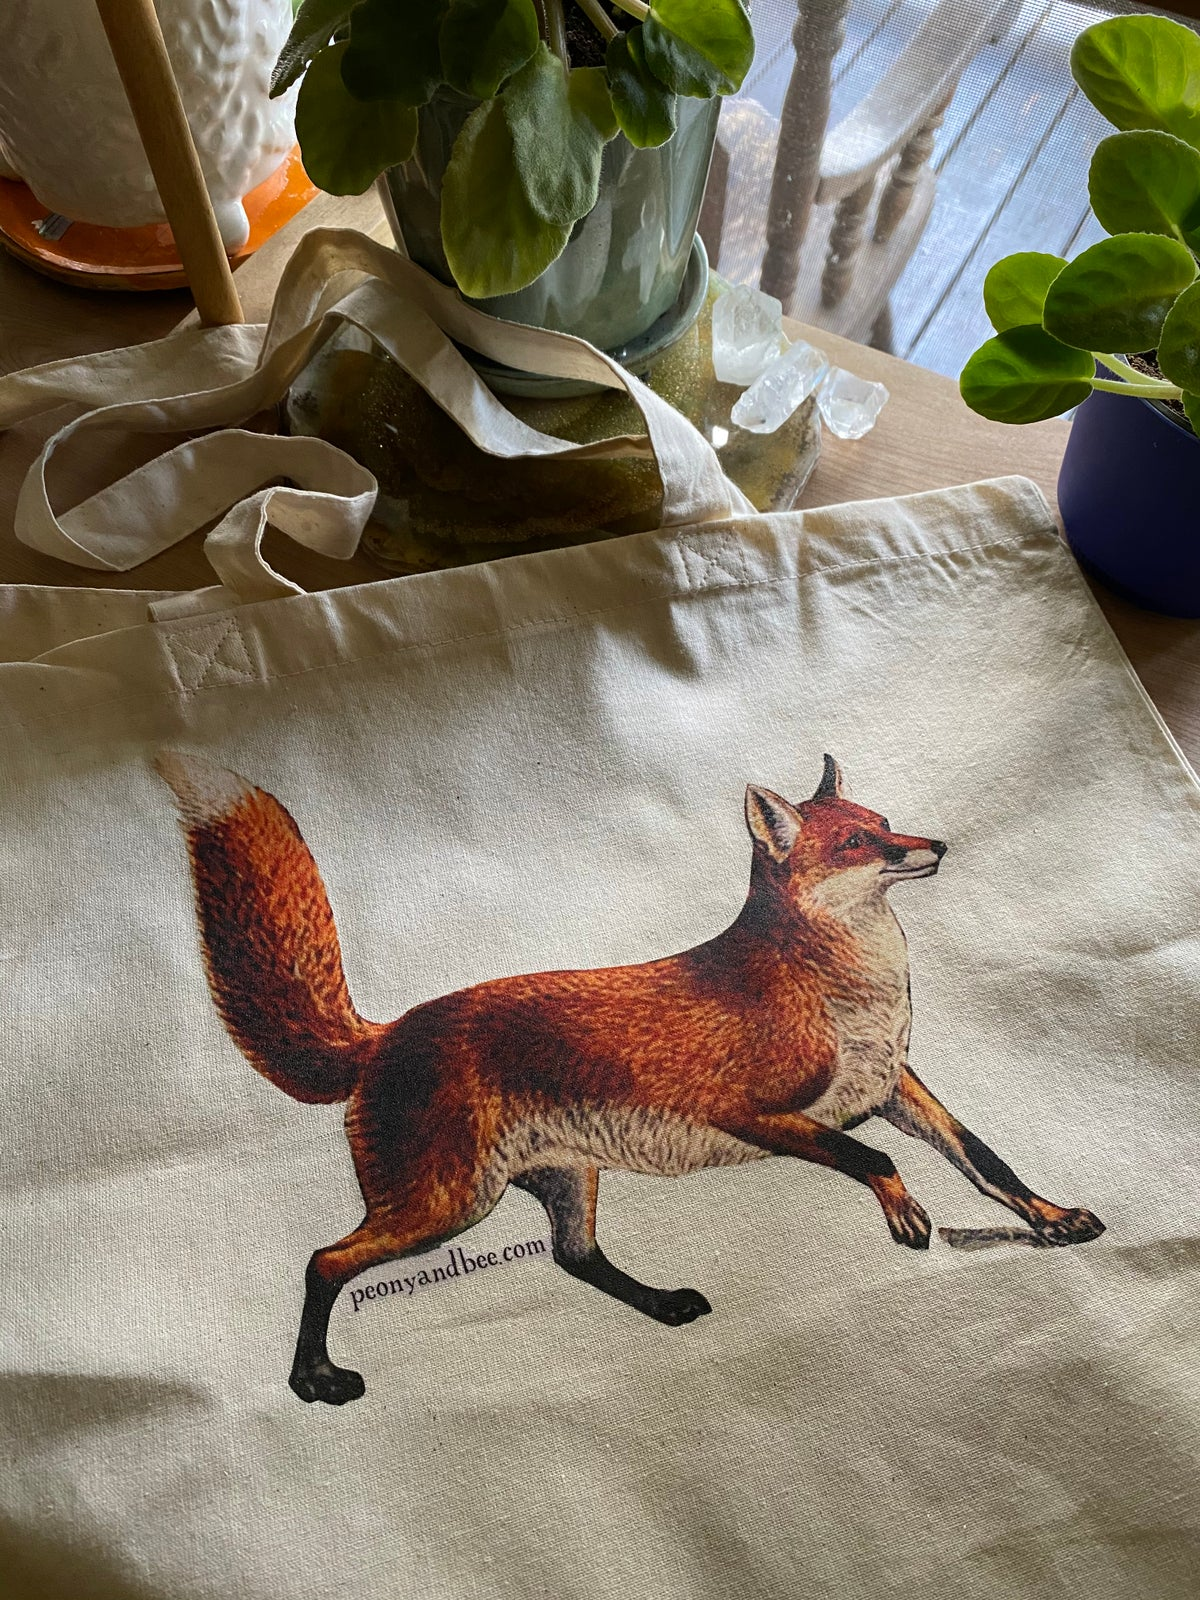 Image of Lightweight Canvas Tote - Fox